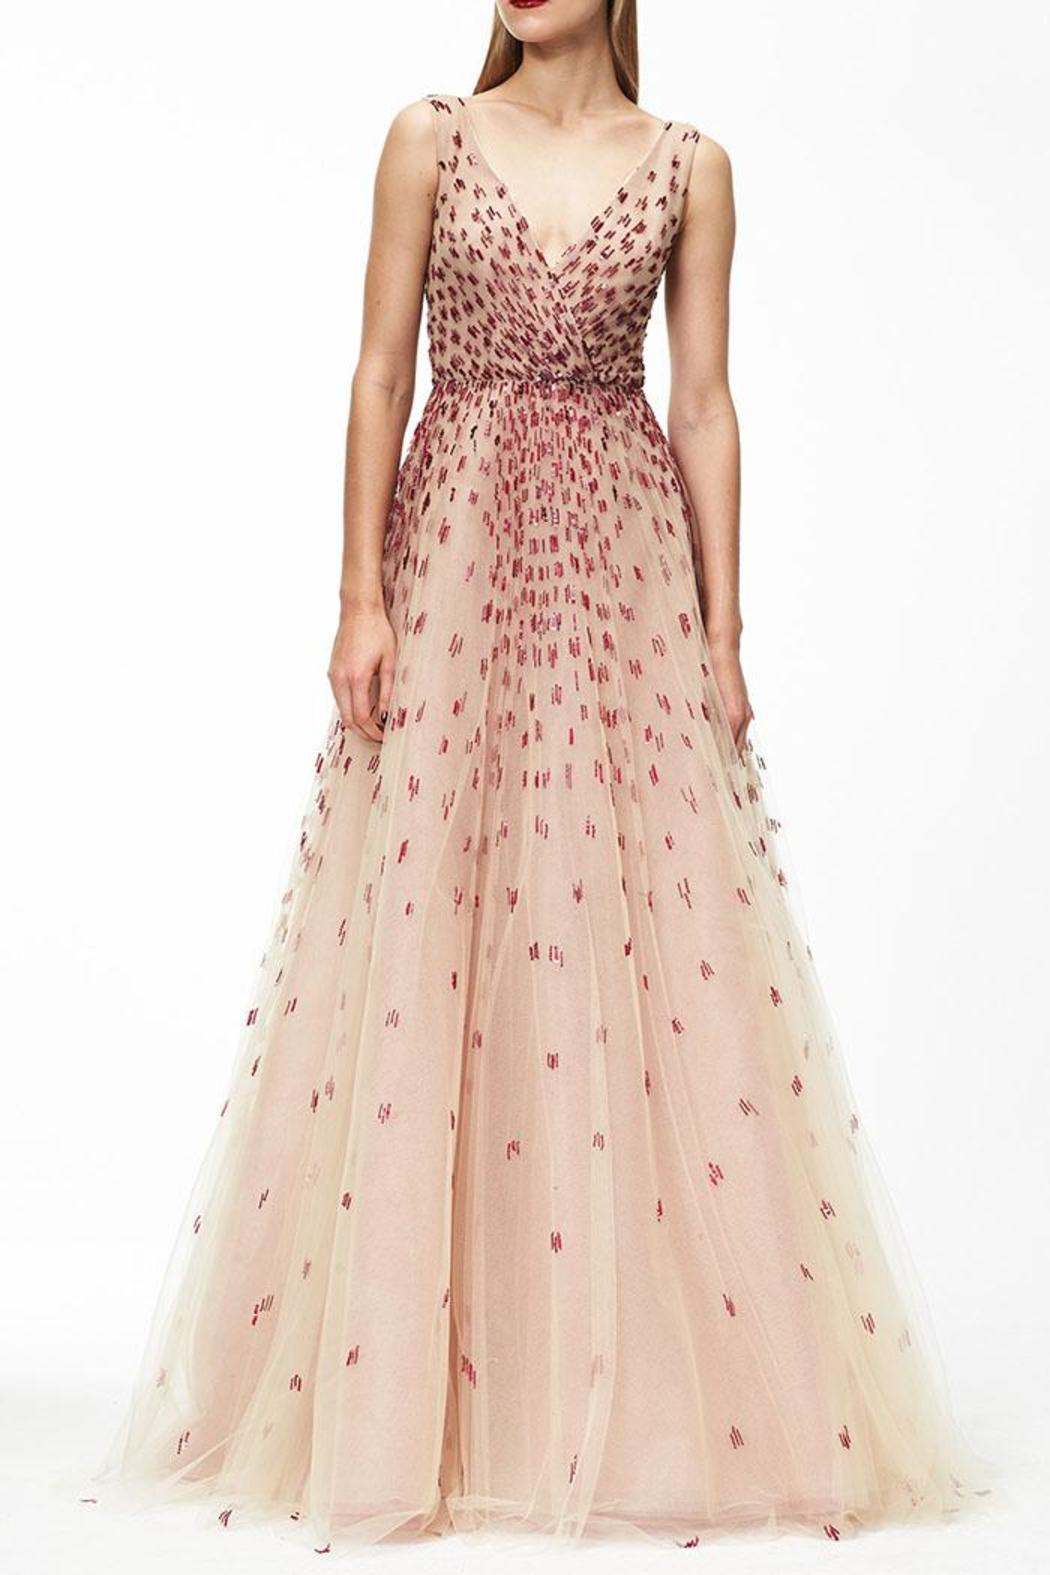 Monique Lhuillier Tulle Couture Dress from Monterrey by Mona Mour ...